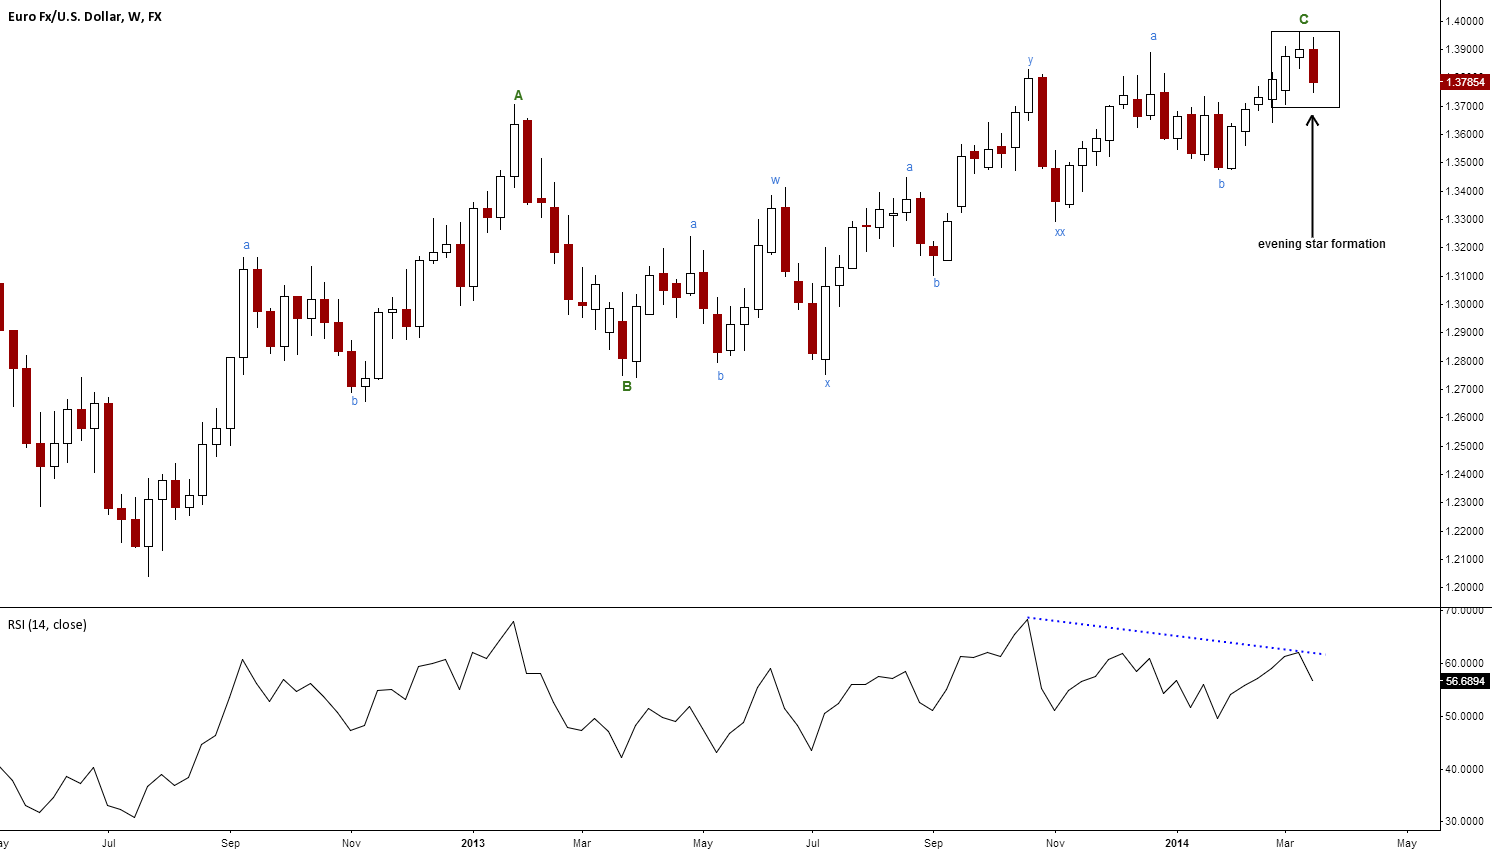 Evening star formation hinting at major reversal after 11 swings